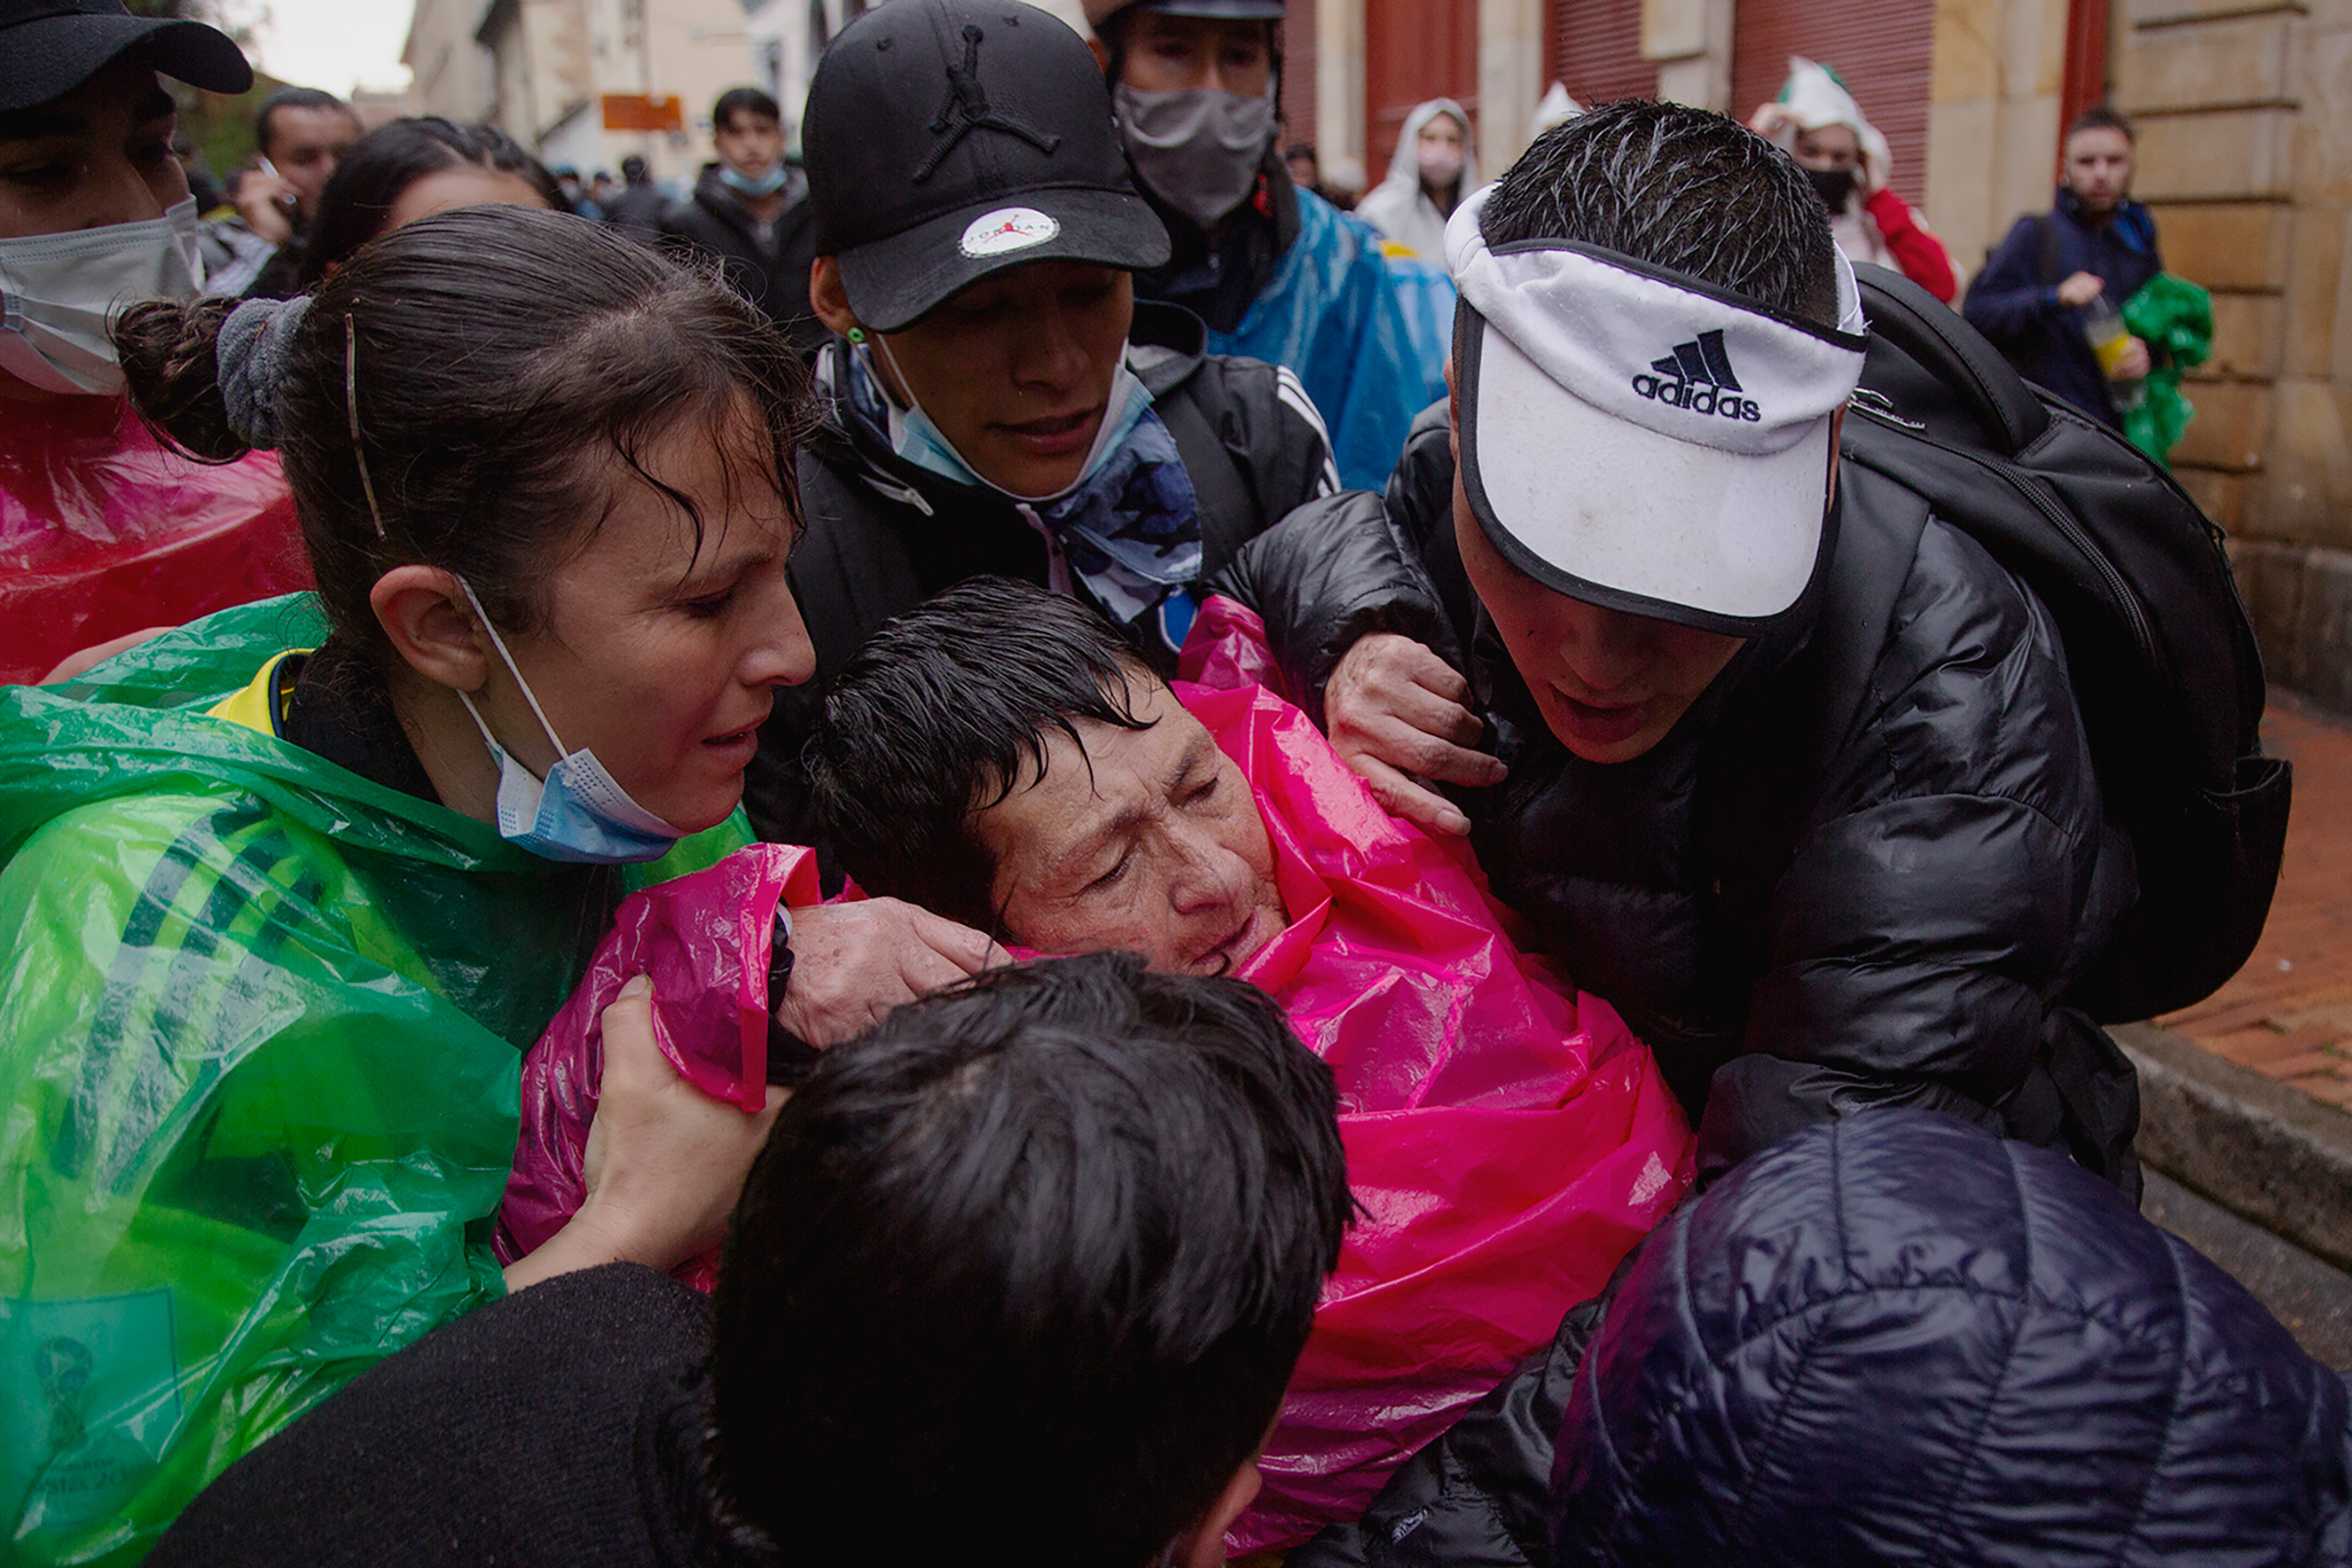 An elderly woman receives first aid treatment after exposure to tear gas used by riot police in Bogotá on May 5.